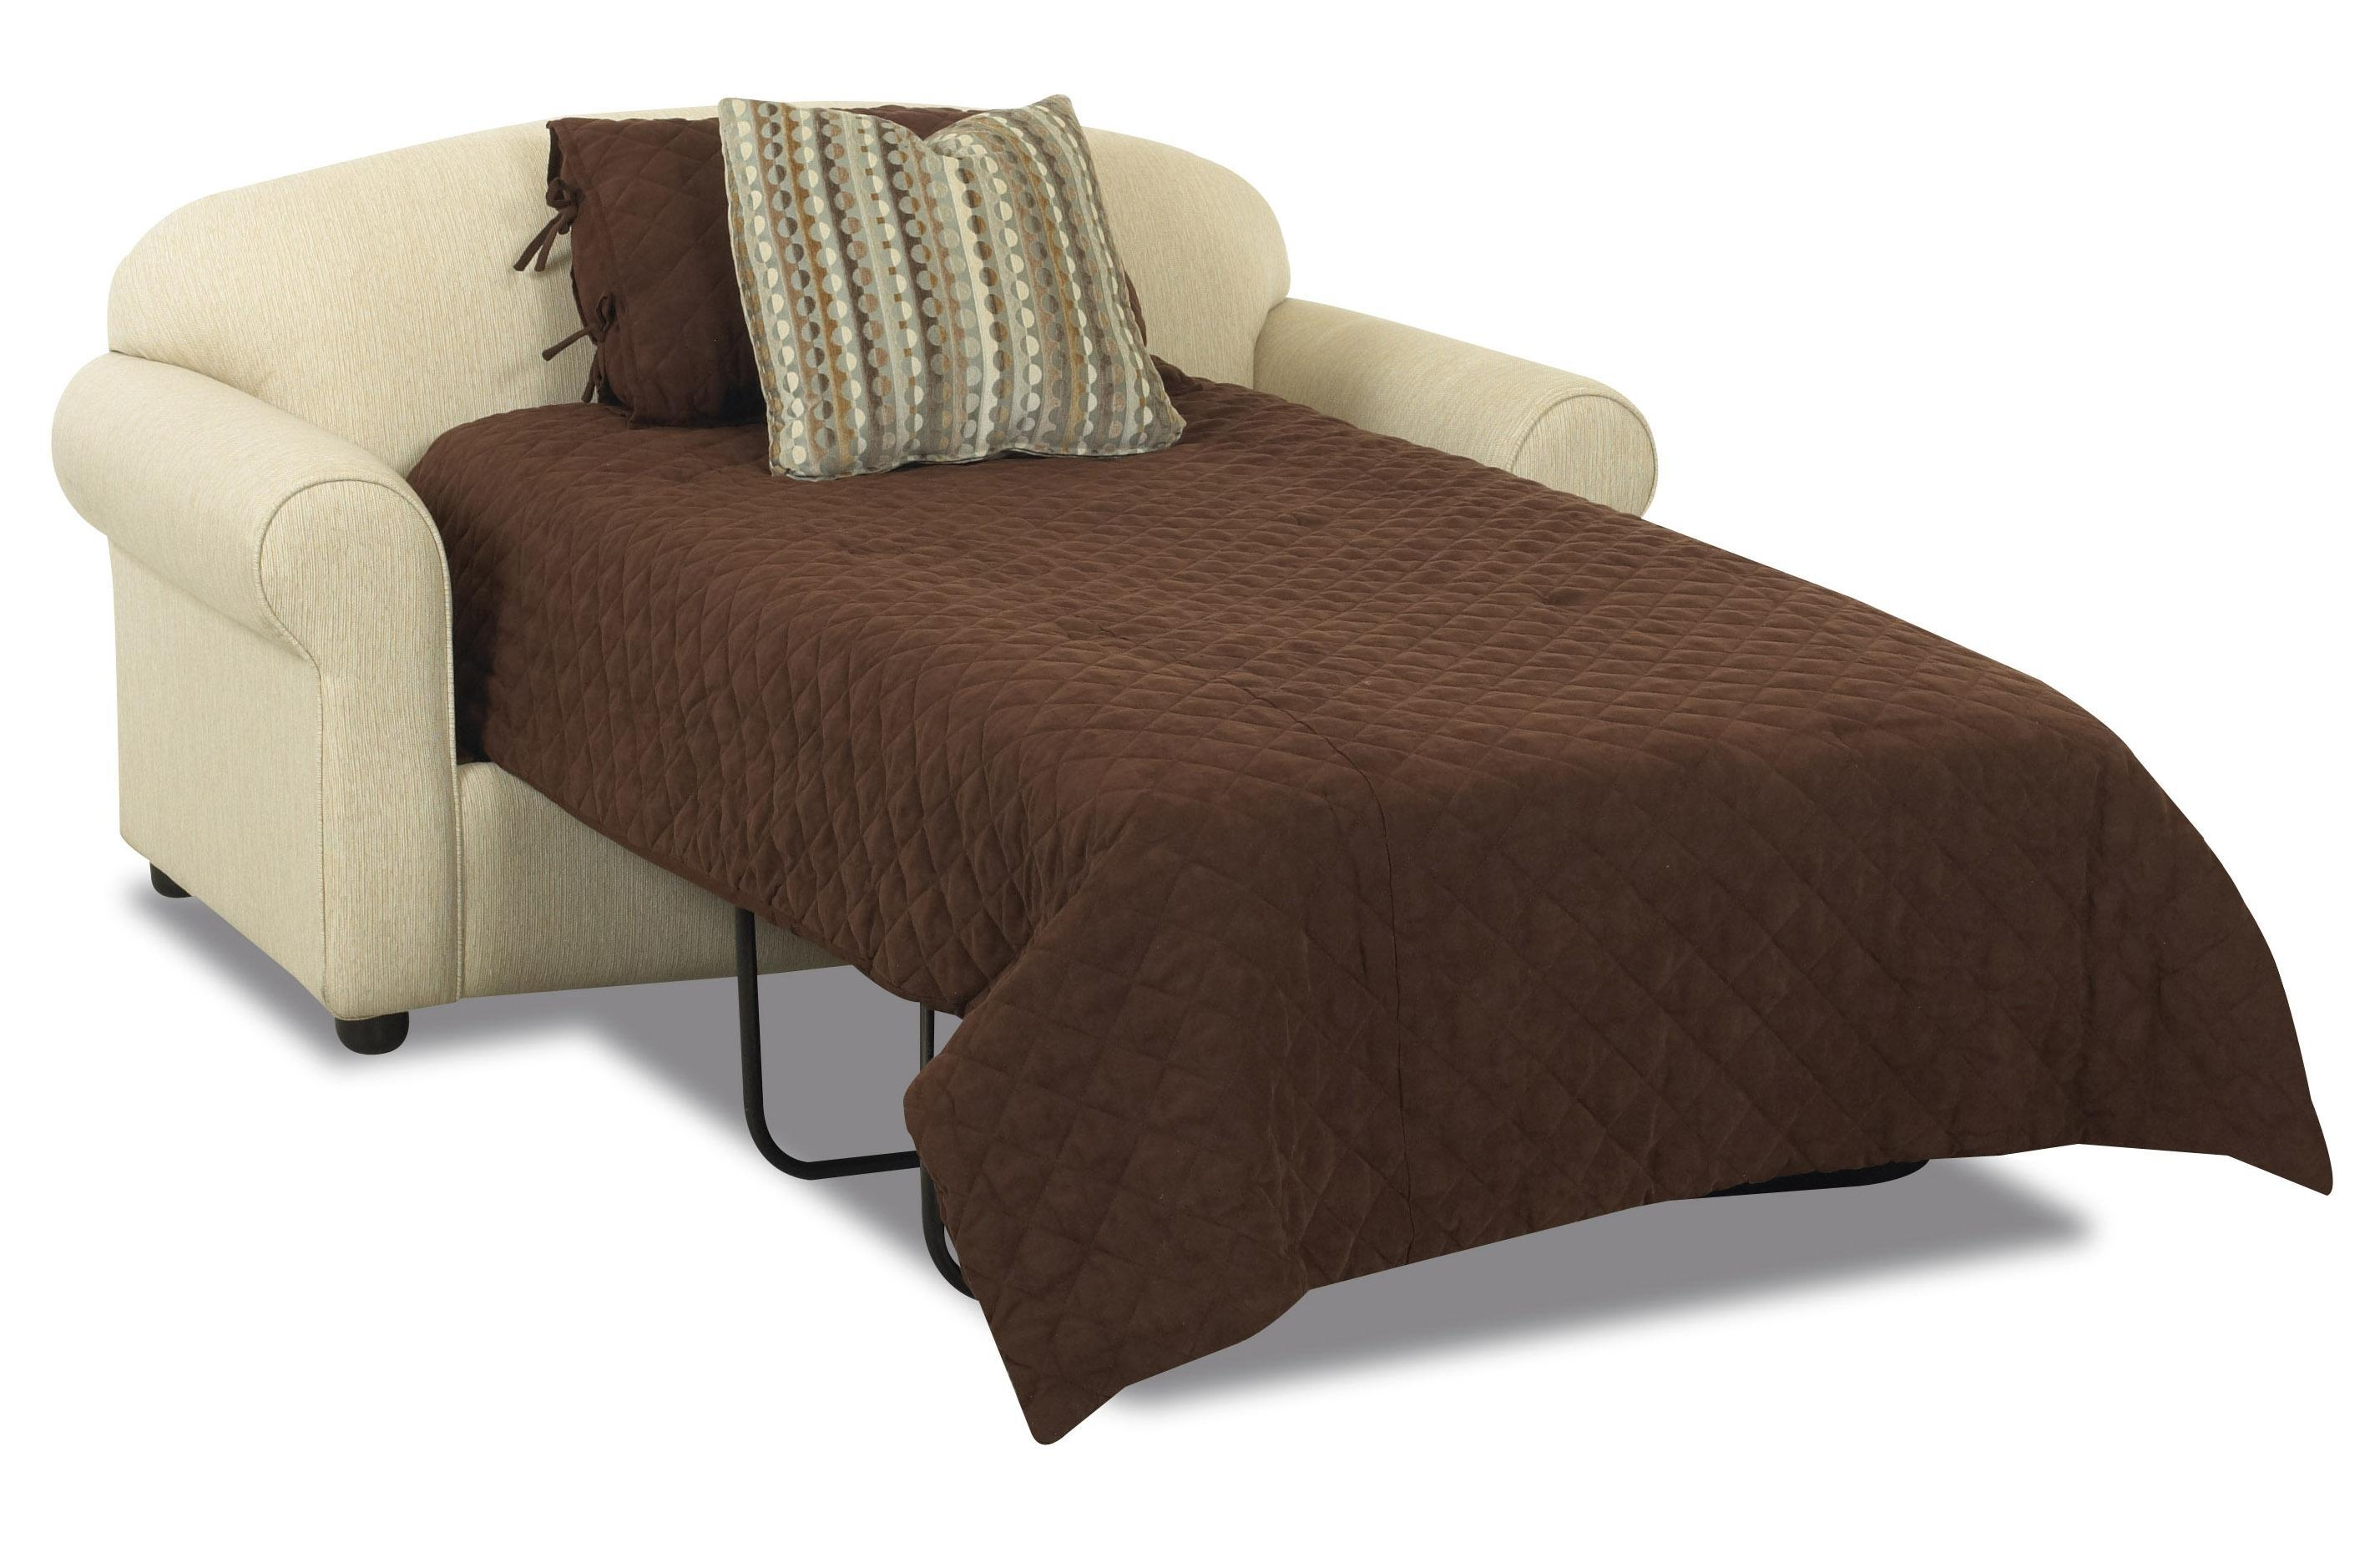 Queen Sofa Bed Dimensions pertaining to Sofa Sleeper Sheets